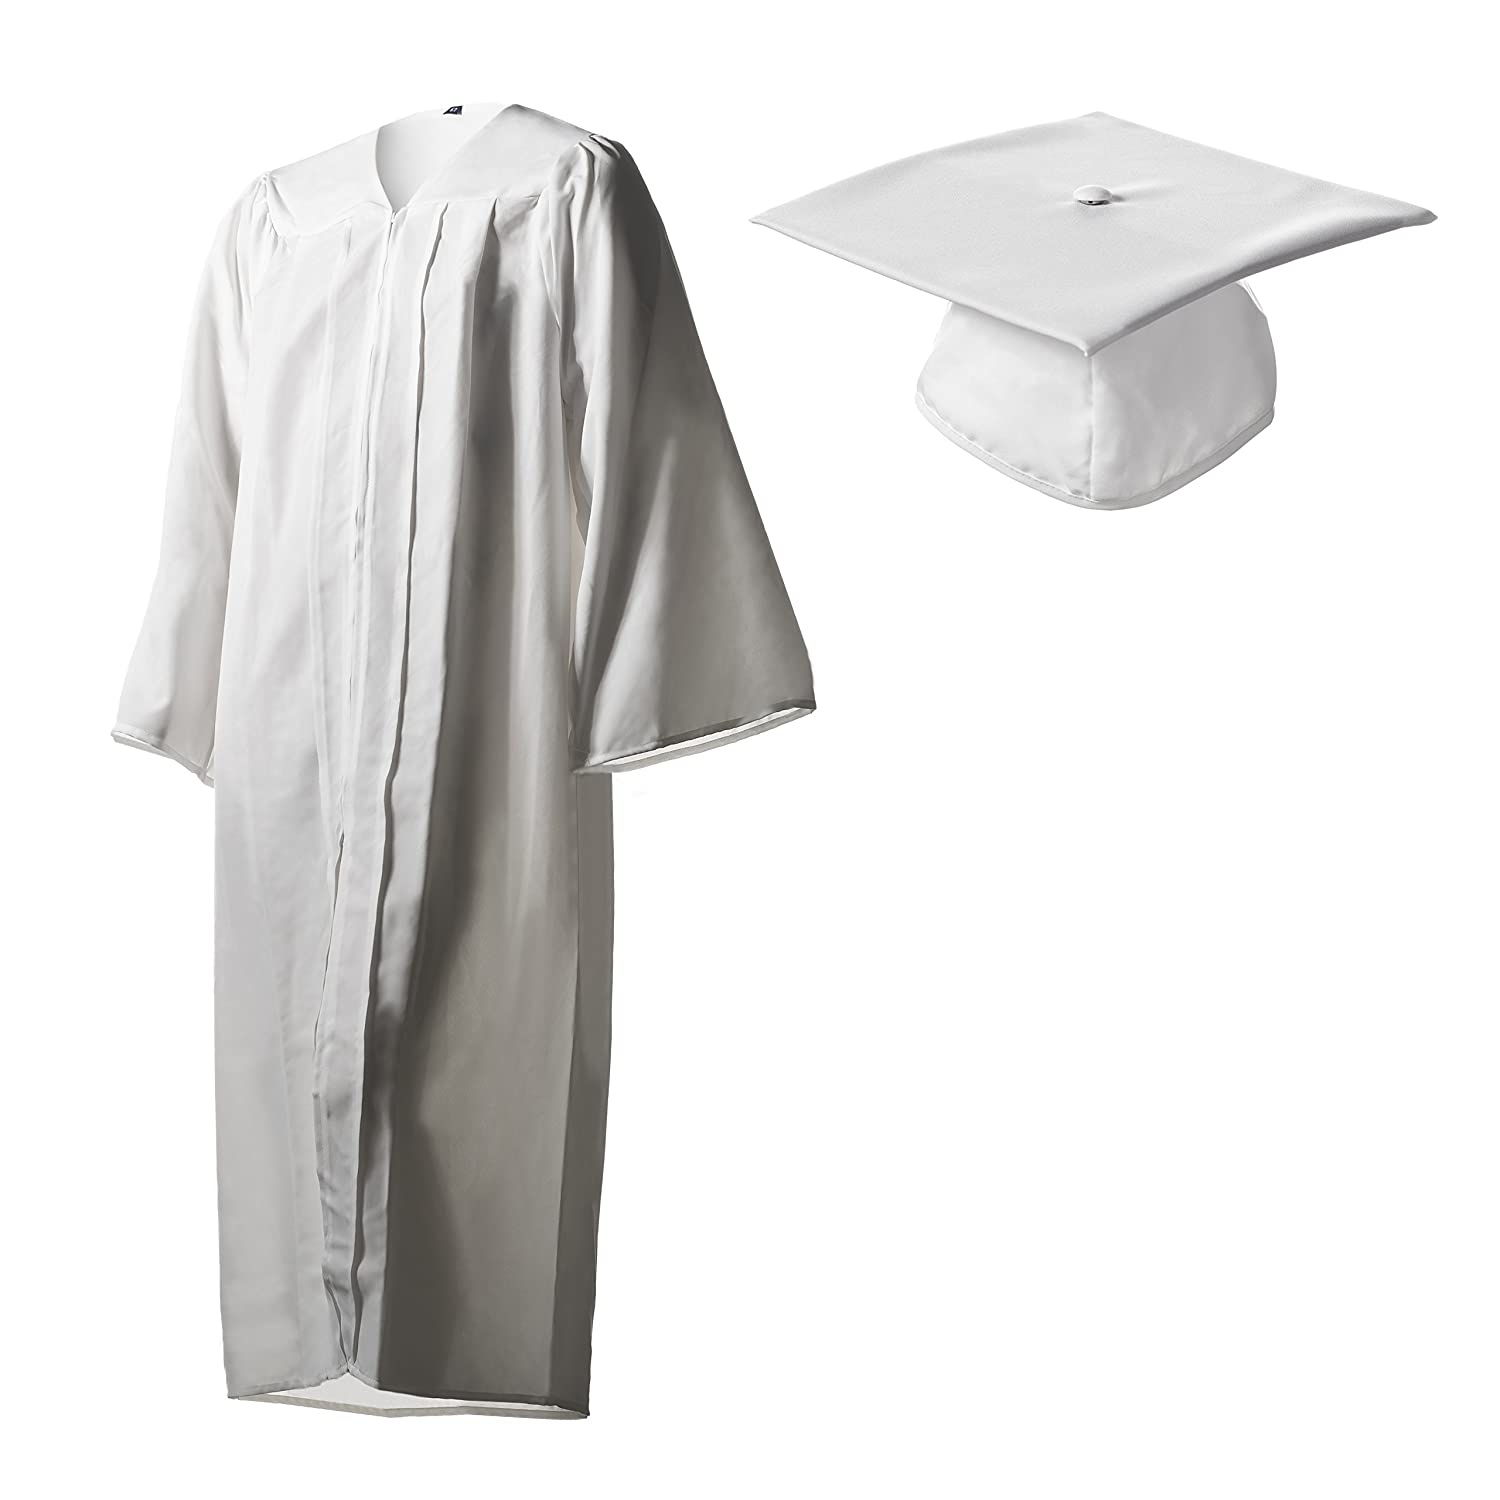 Famous White Graduation Gown Ensign - Best Evening Gown Inspiration ...